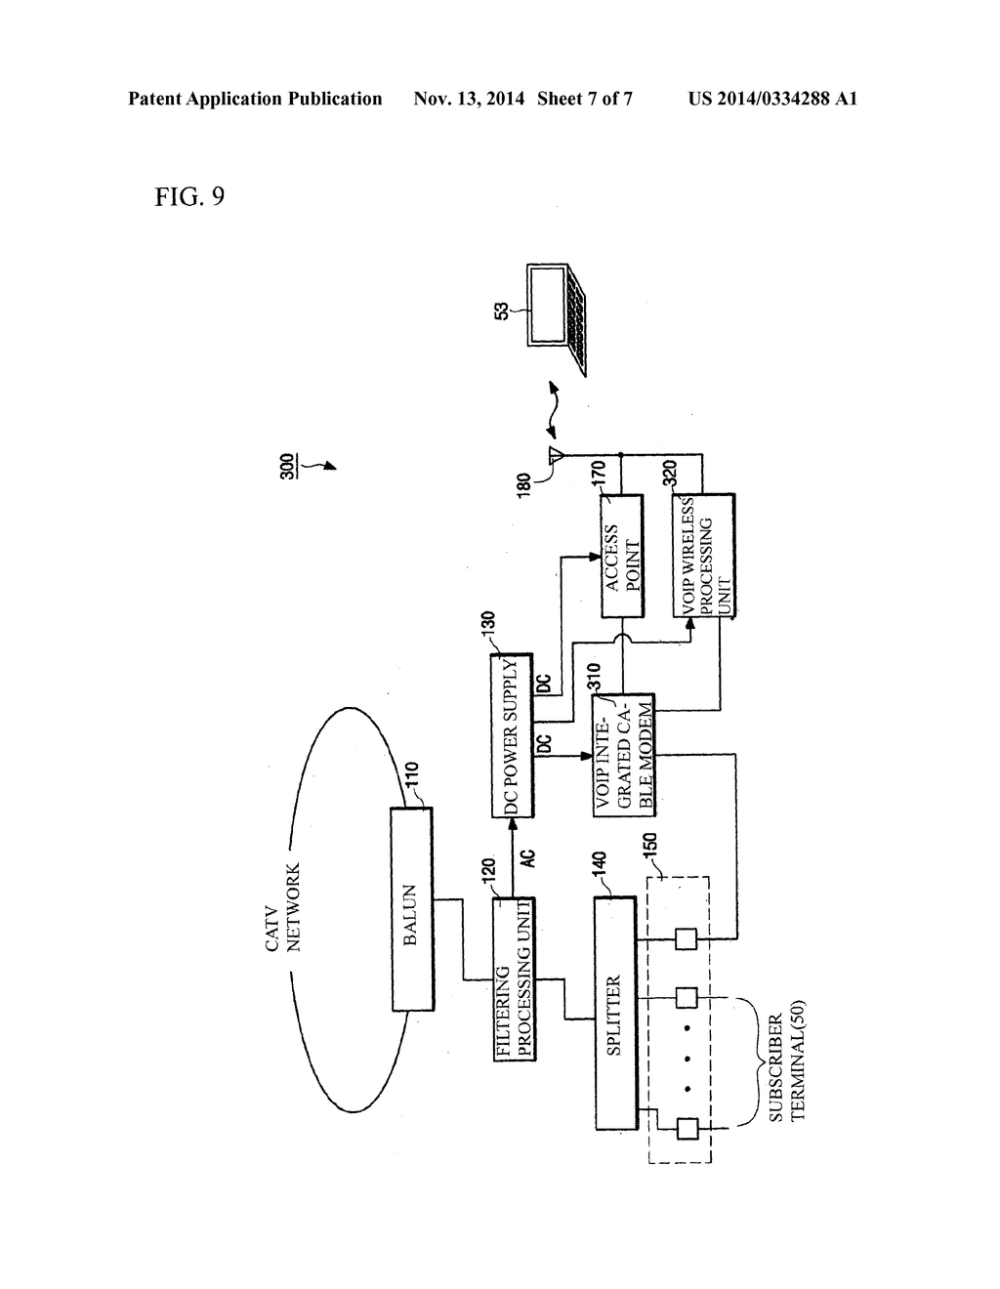 medium resolution of wireless tap off device capable of providing wireless lan service diagram schematic and image 08